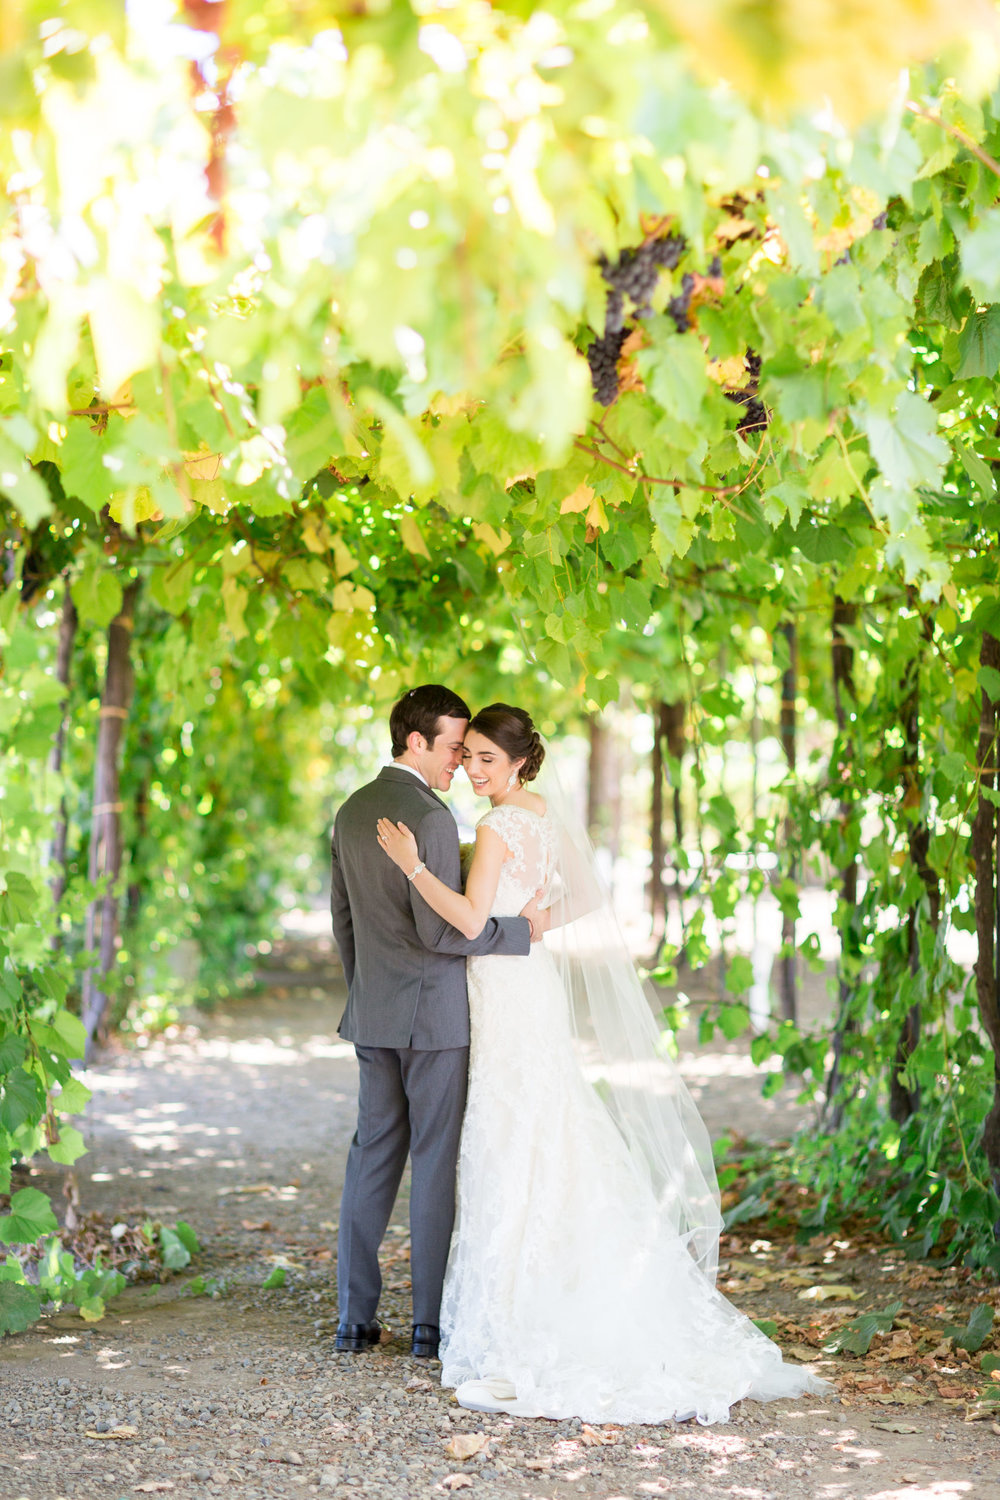 Trentadue-Winery-Wedding-Photographer-1-1707x2560.jpg